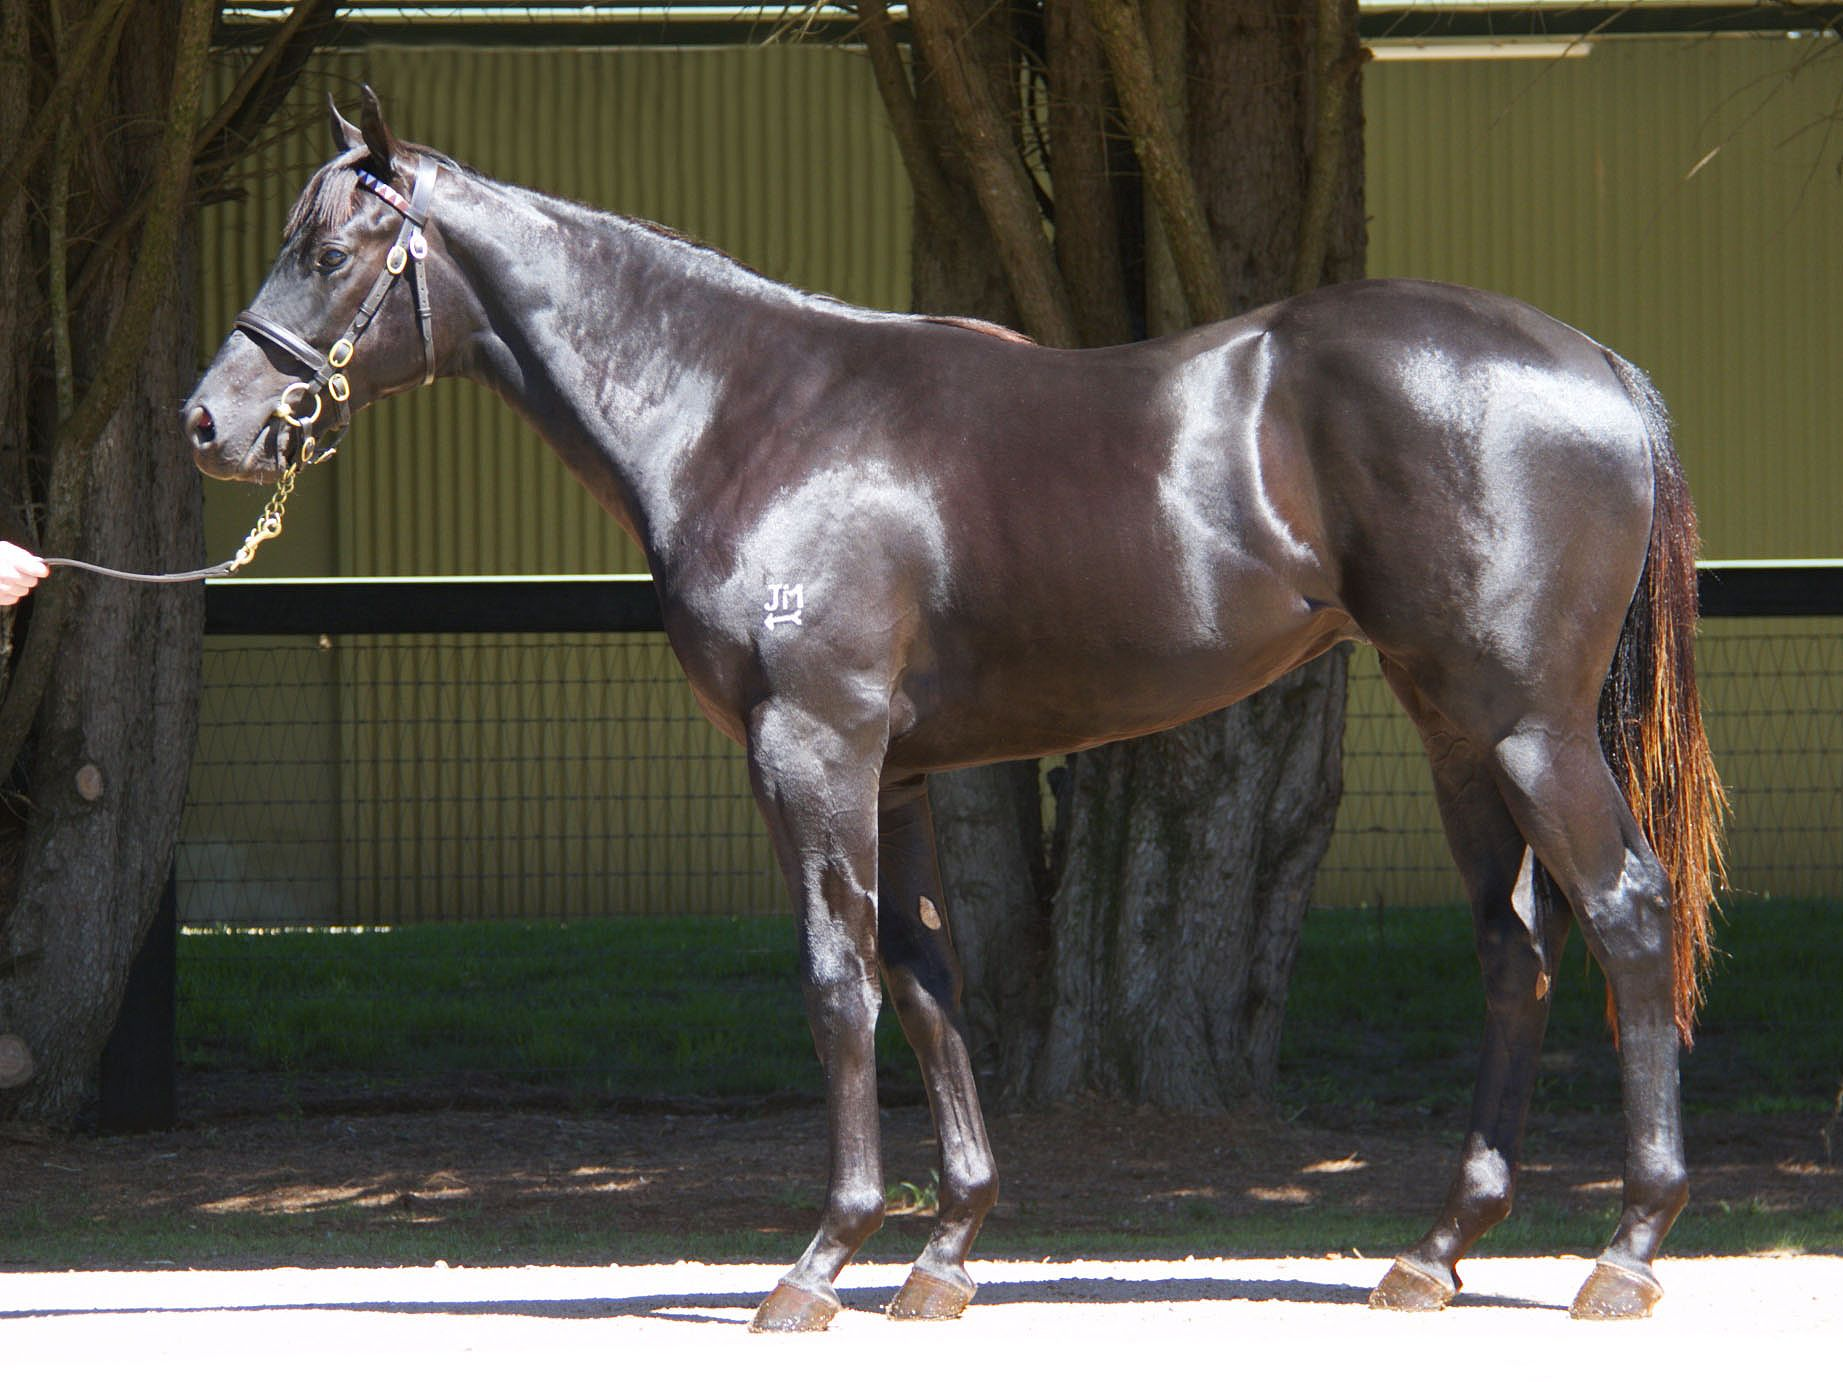 Maslow at 2017 Melbourne Premier Yearling Sale